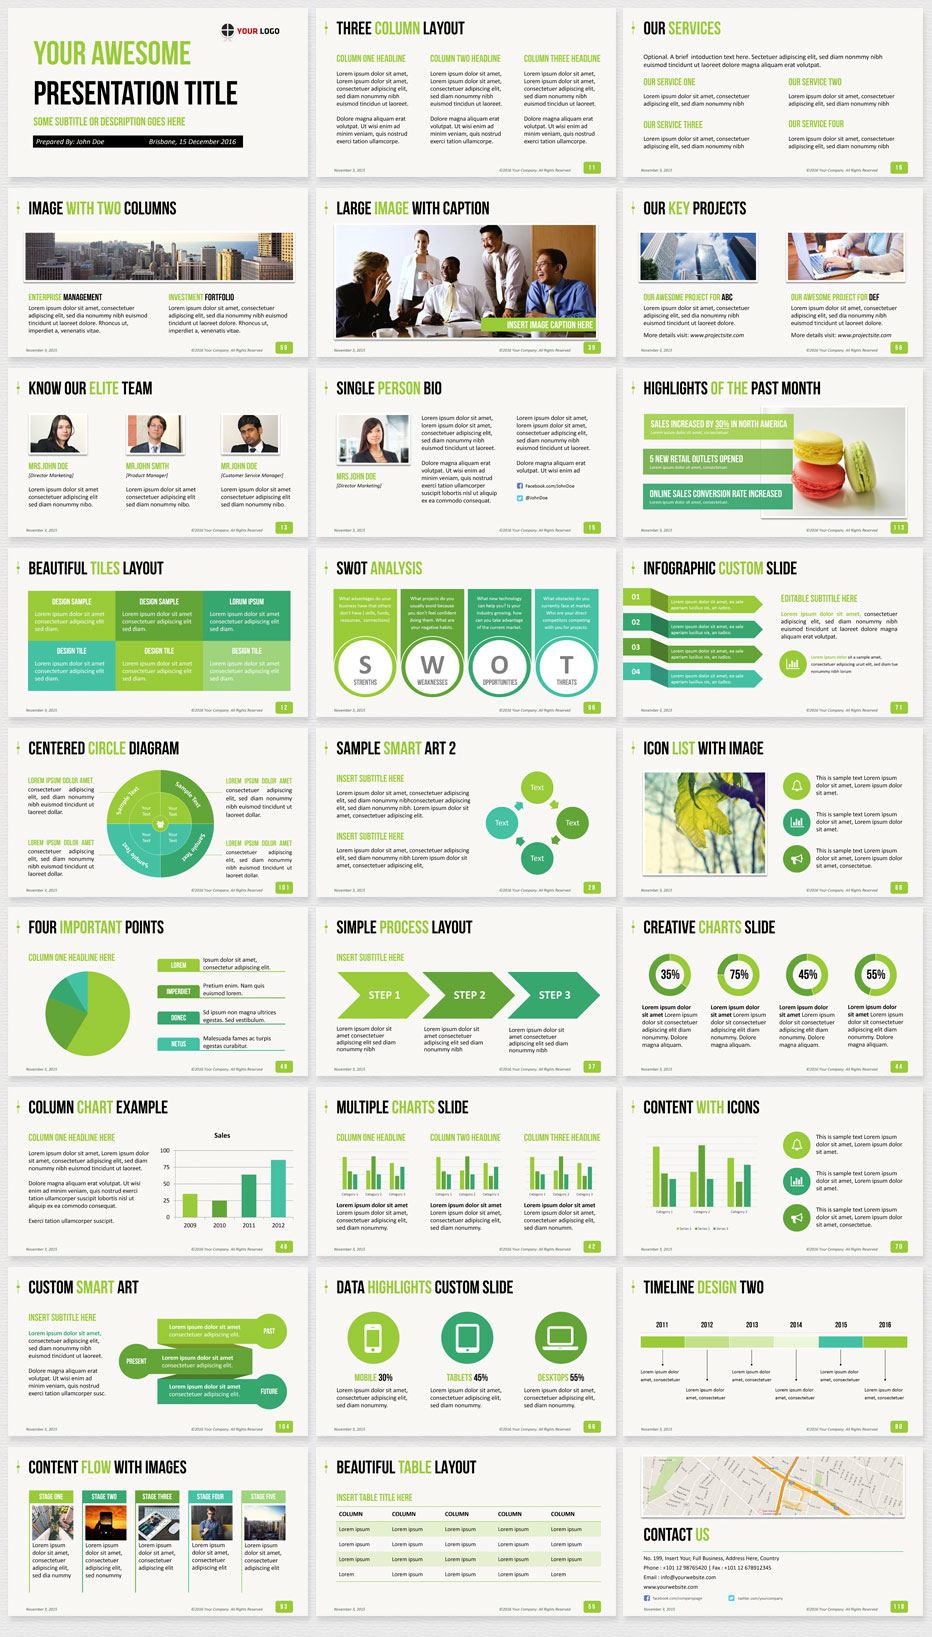 ultimate professional business powerpoint template 1200 clean slides. Black Bedroom Furniture Sets. Home Design Ideas